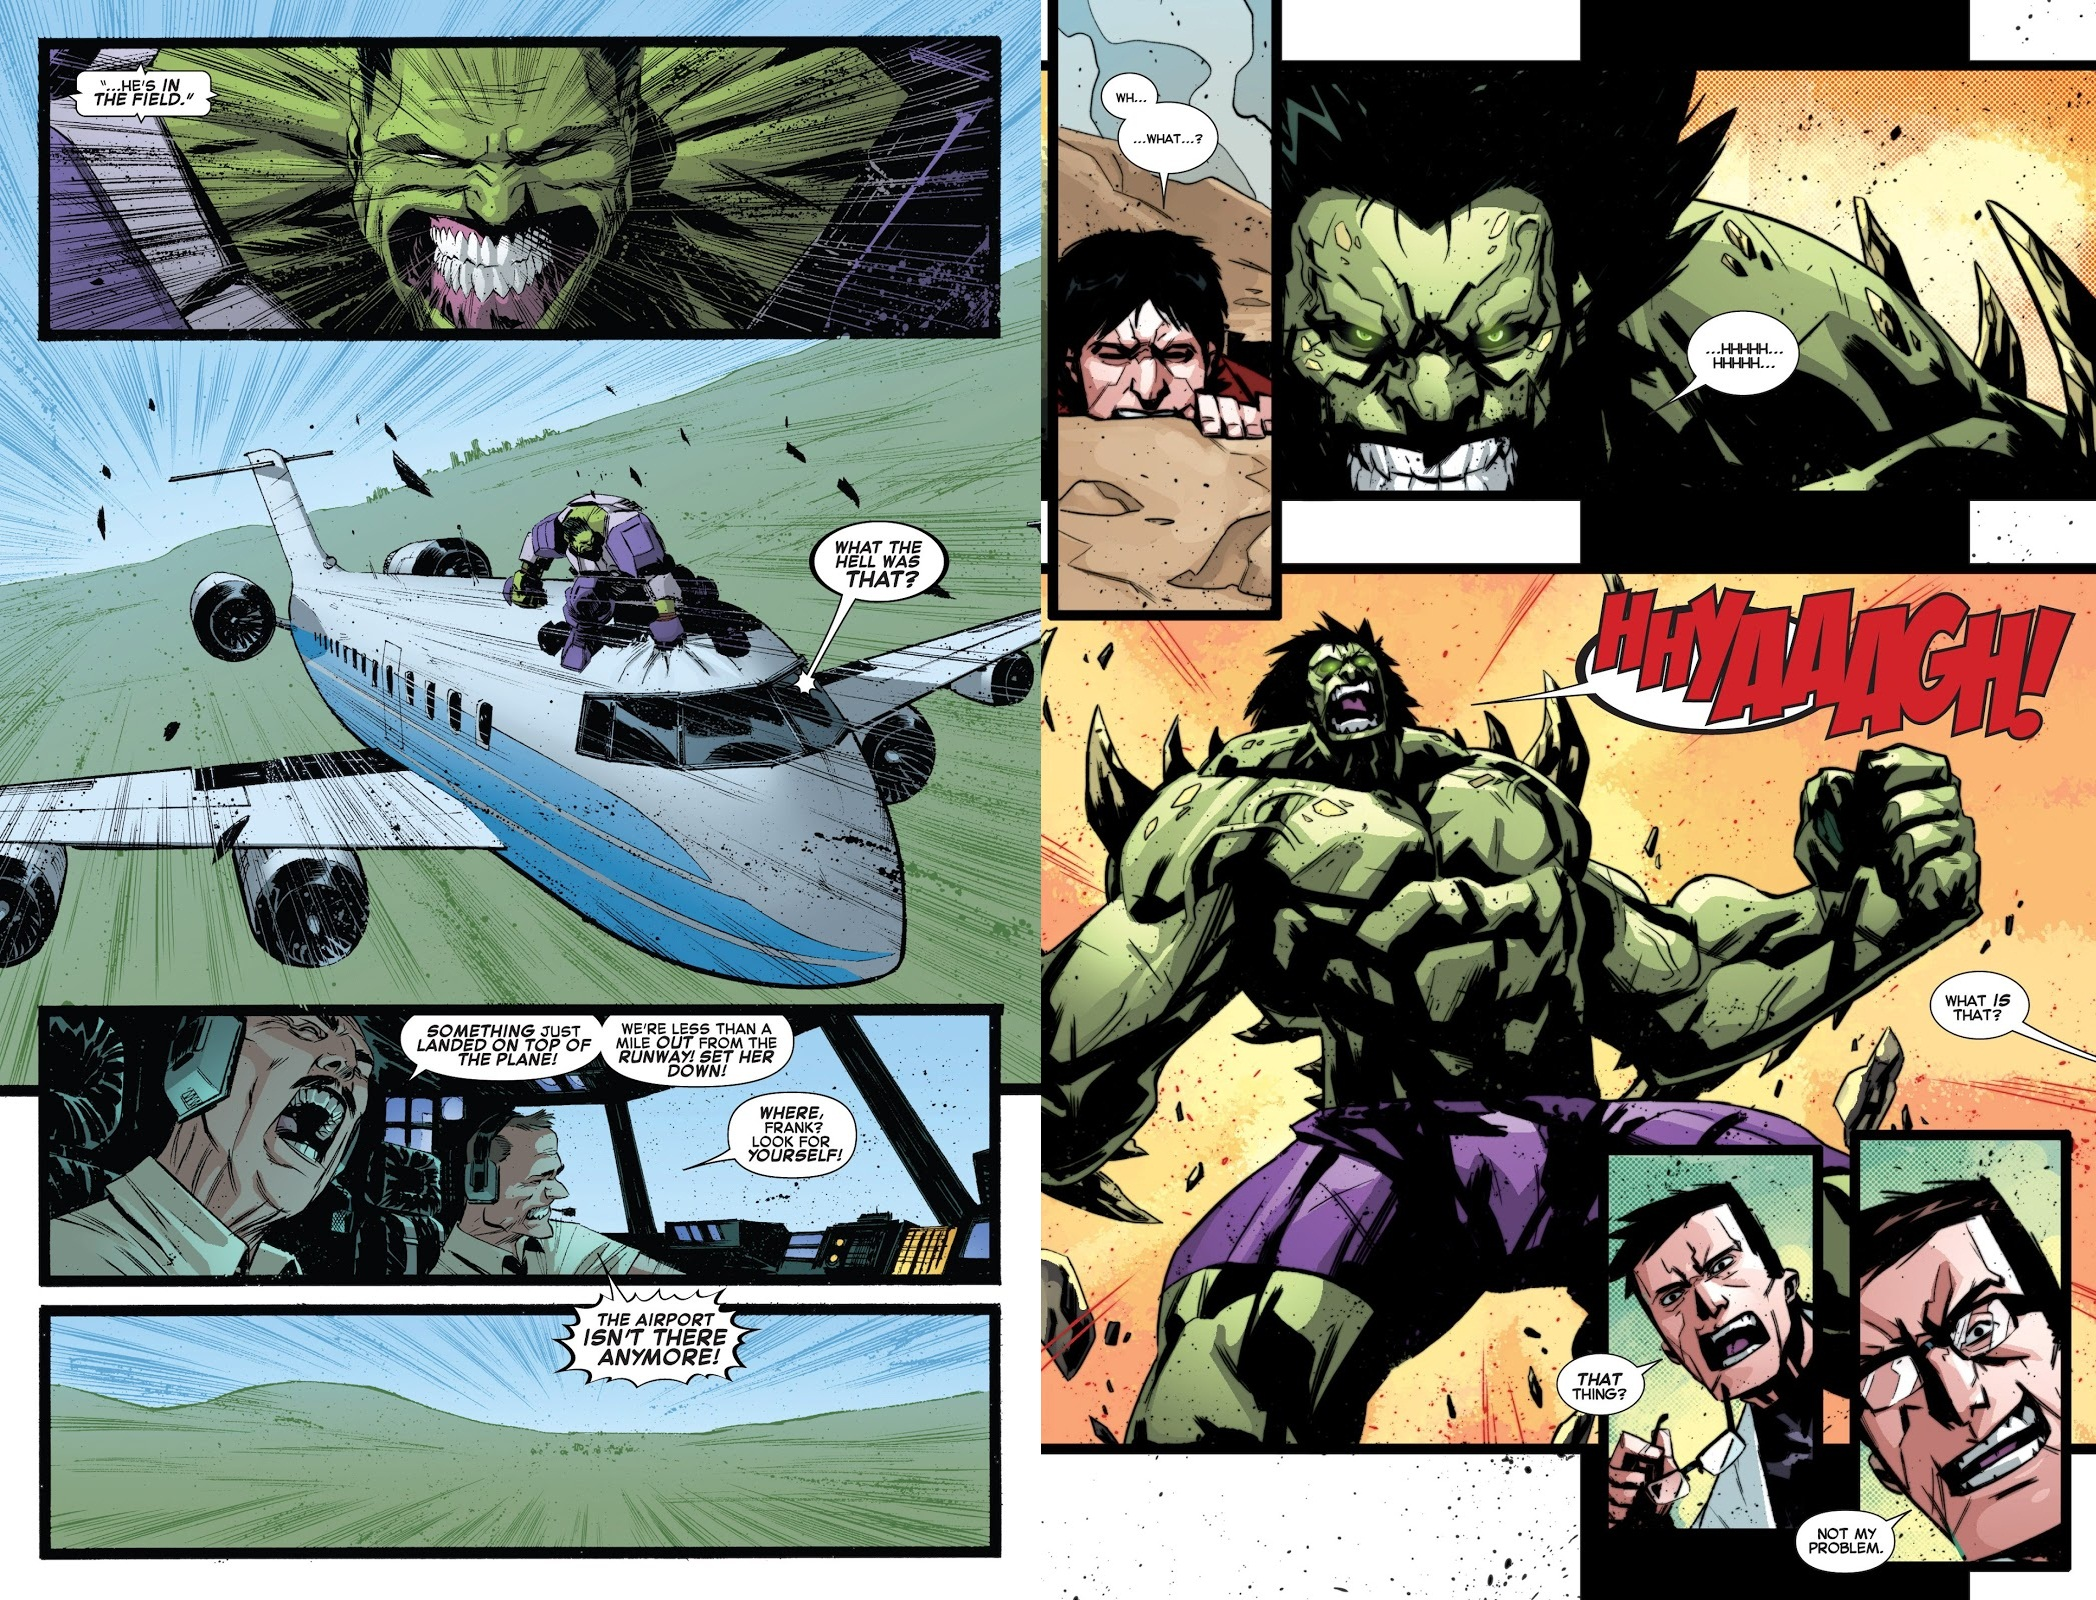 Indestructible Hulk 3 S.M.A.S.H. Time review